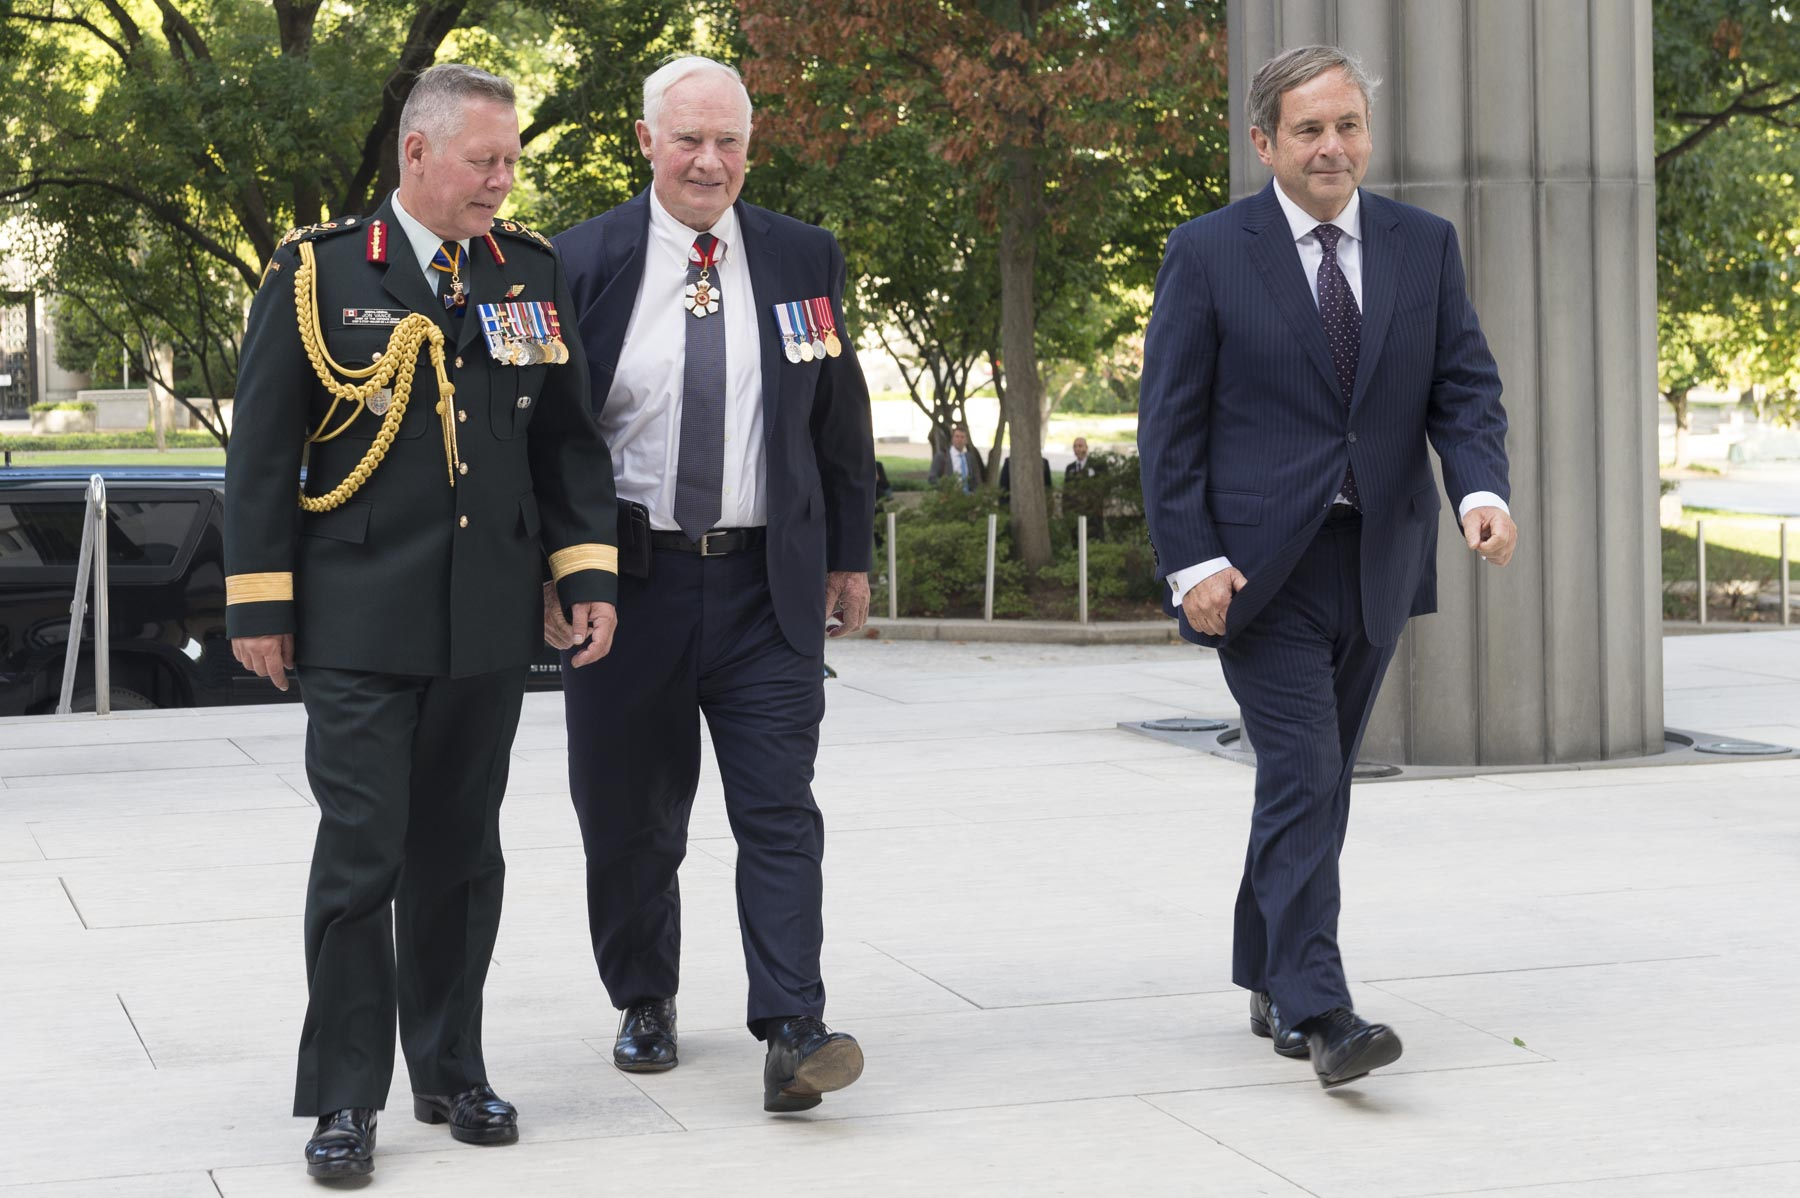 Upon his arrival in Washington, D.C., on September 13, 2017, the Governor General was greeted by General Jonathan Vance, Chief of the Defence Staff, and Mr. David MacNaughton, Ambassador of Canada to the United States.